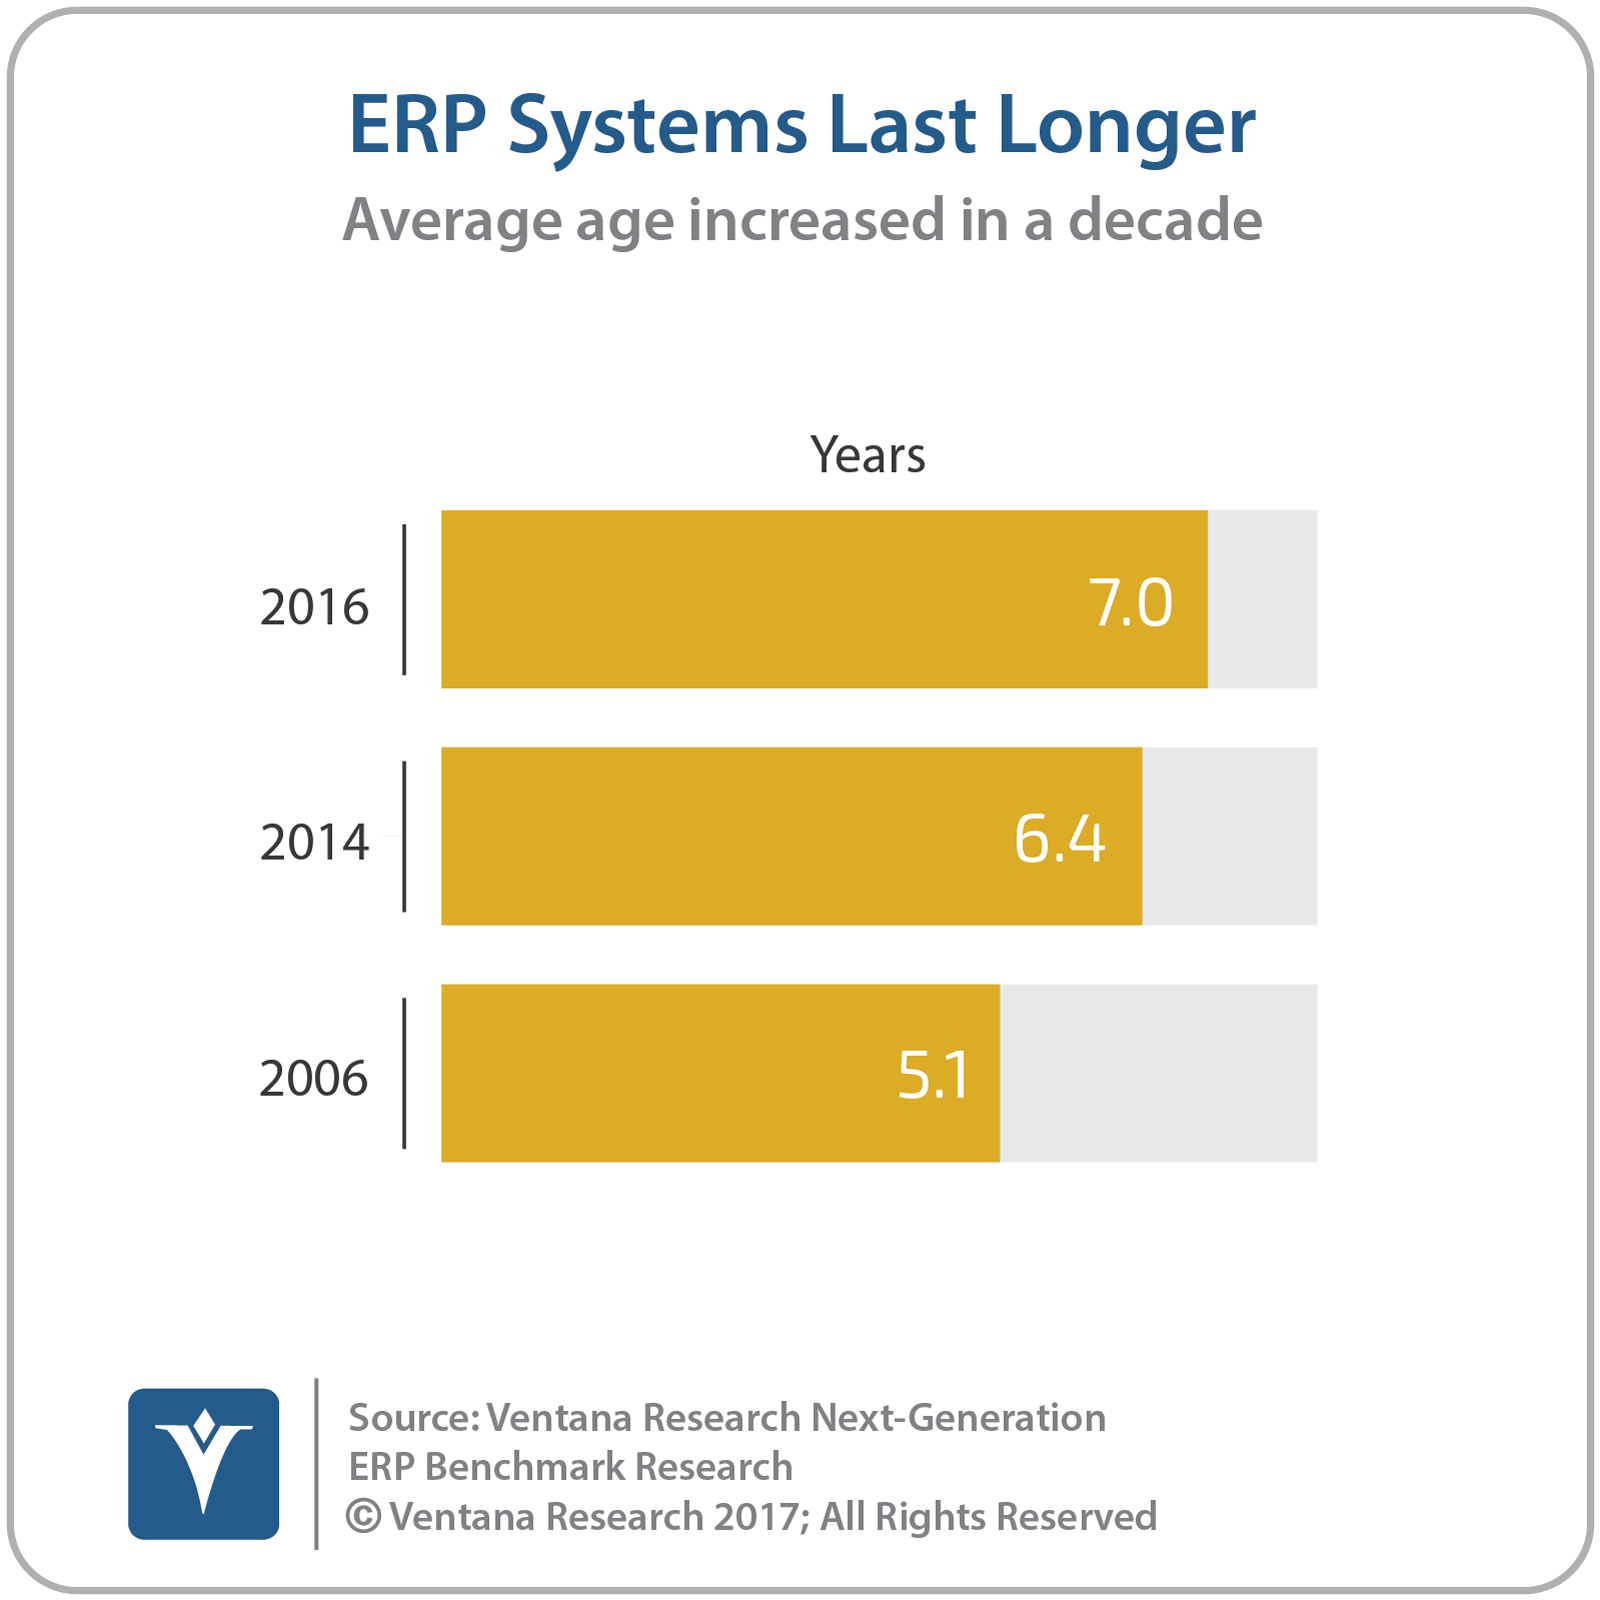 vr_NG_ERP_general_01_ERP_systems_last_longer-2.png